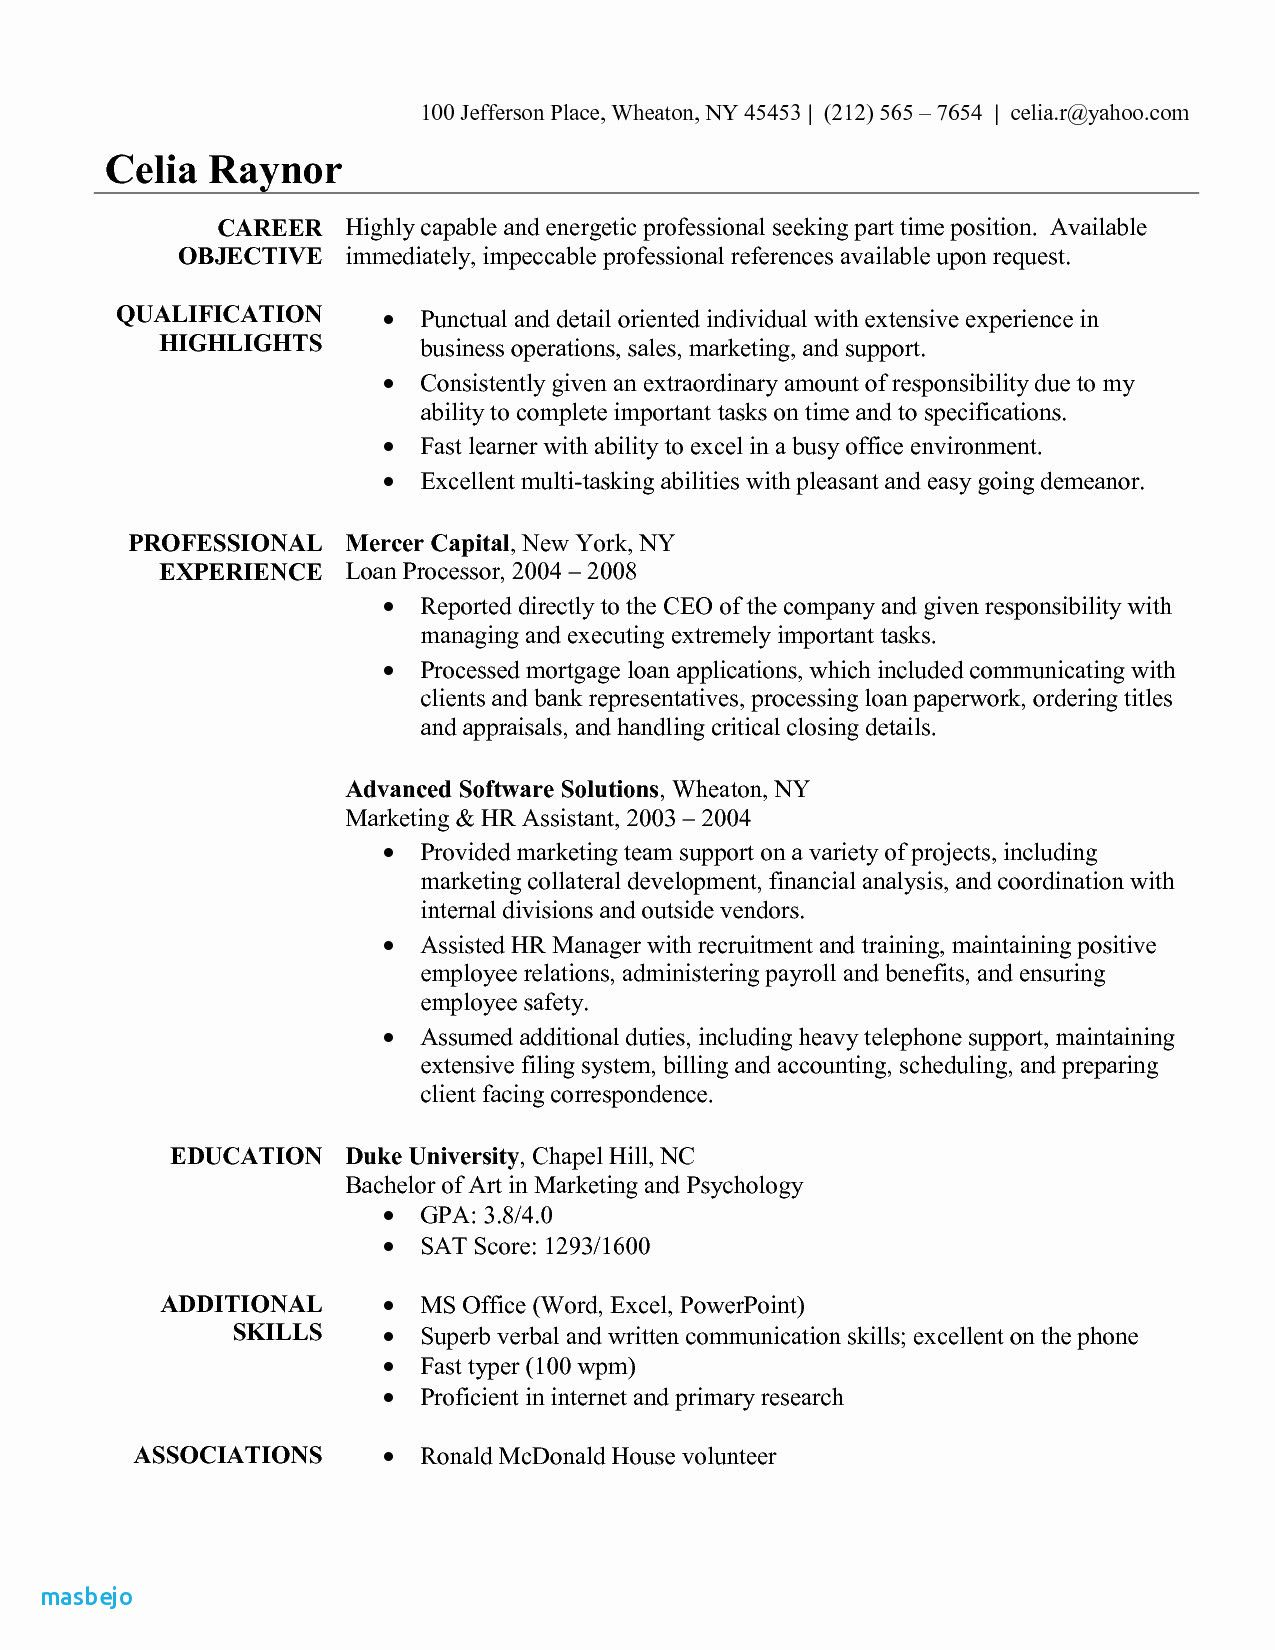 How To Write Ms Office Skills In Resume Resume Examples Quick Learner 1 Resume Examples Pinterest